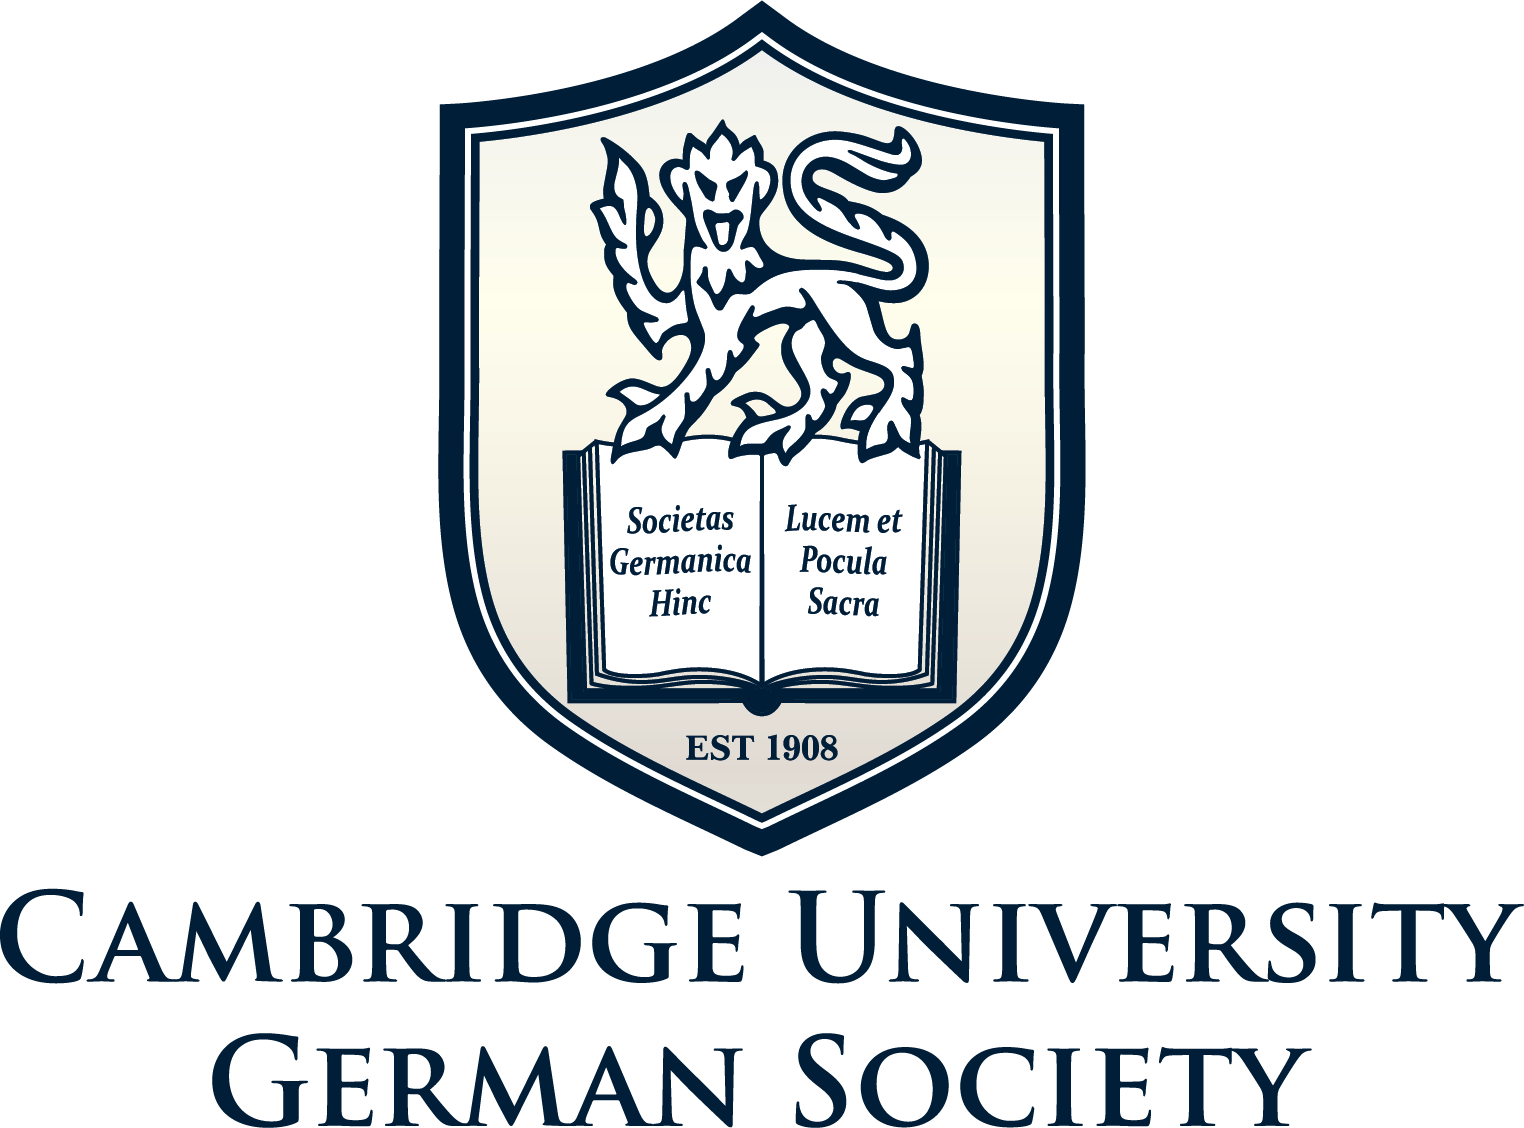 Cambridge University German Society(3)